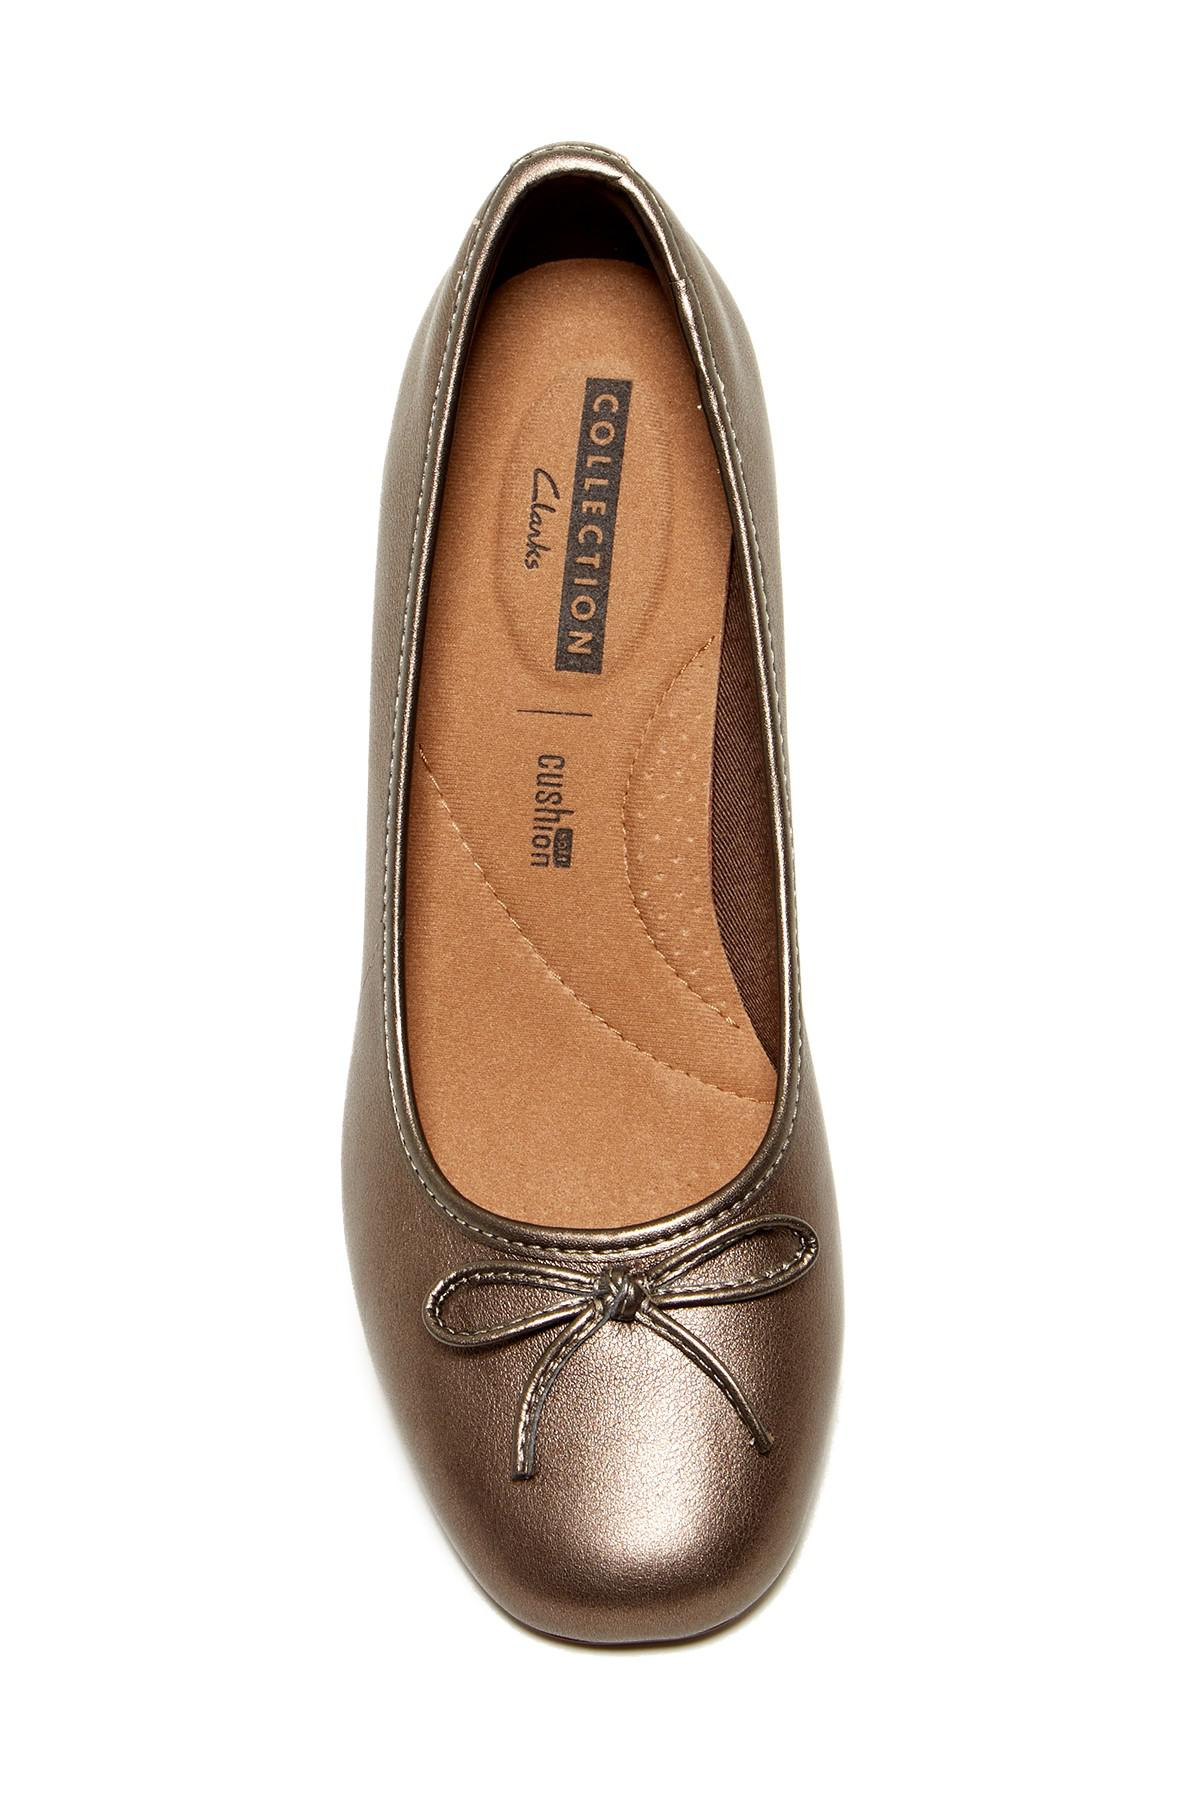 3bba702b55e Lyst - Clarks Chartli Daisy Leather Pump - Wide Width Available in Brown